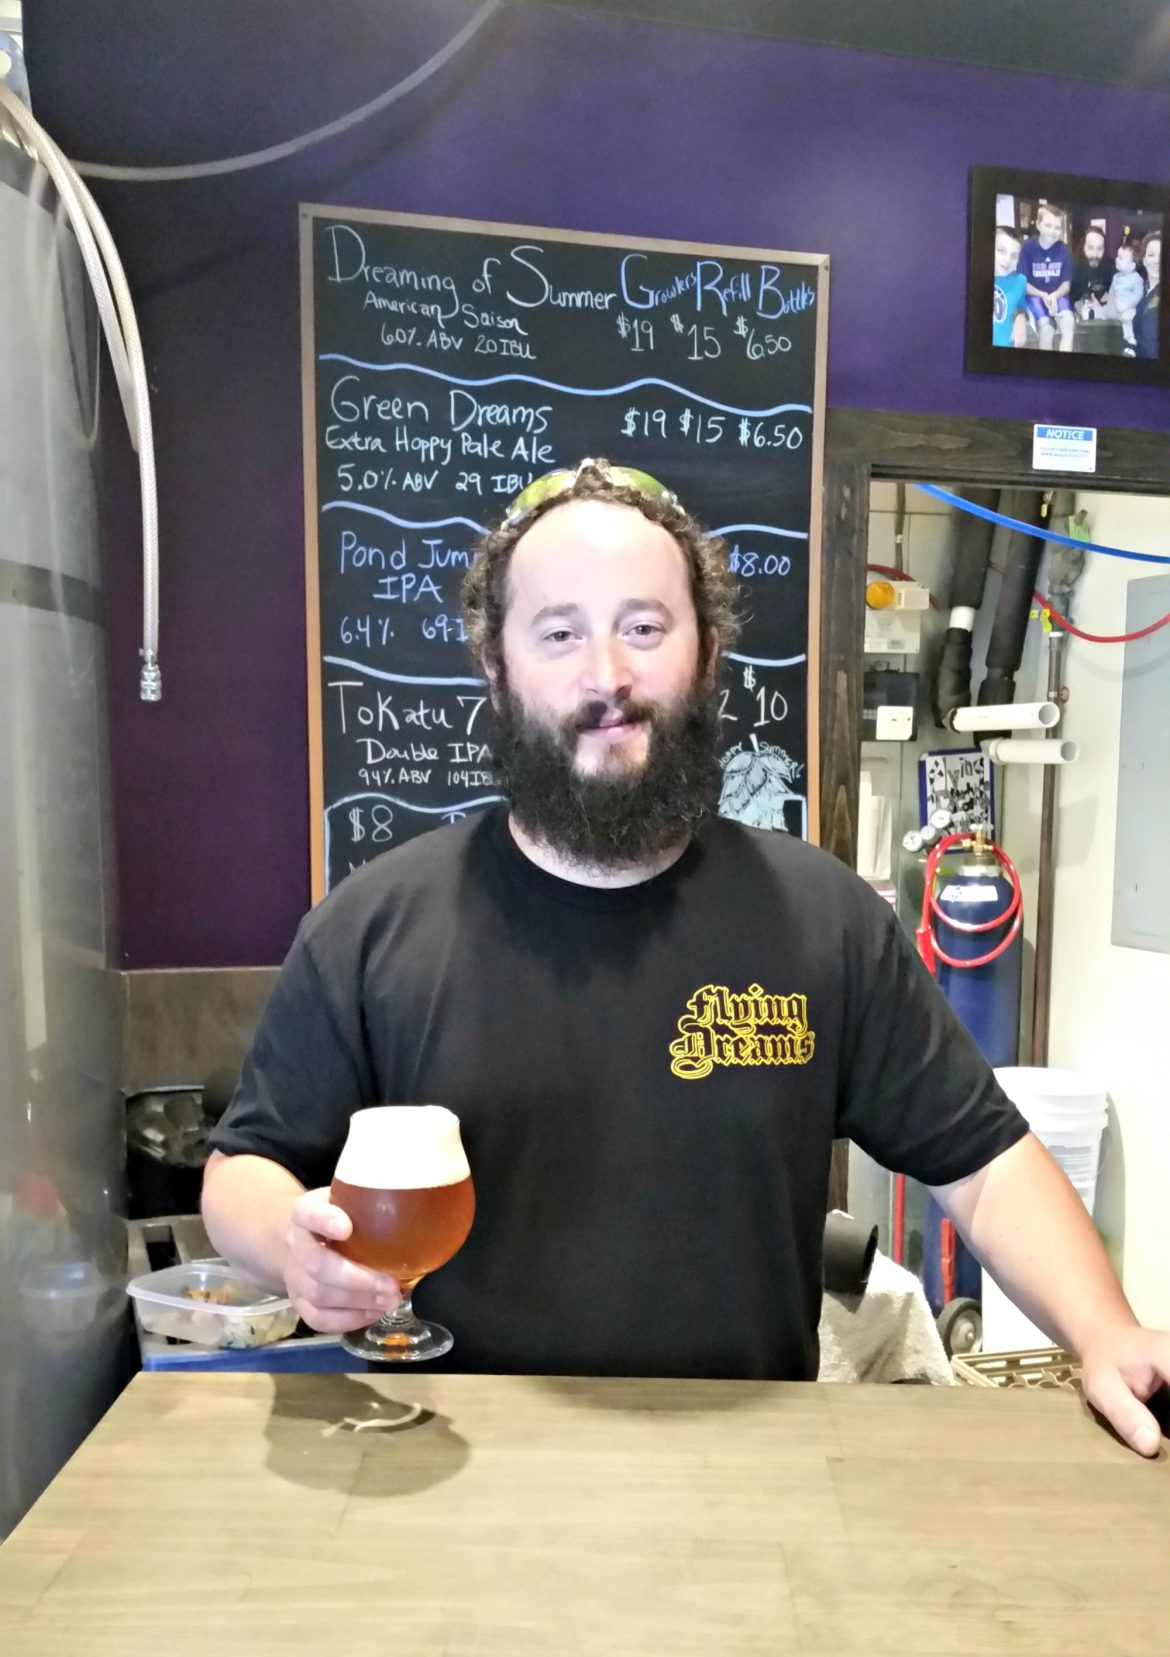 Dave Richardson, founder of Flying Dreams brewery and award-winning brew master.